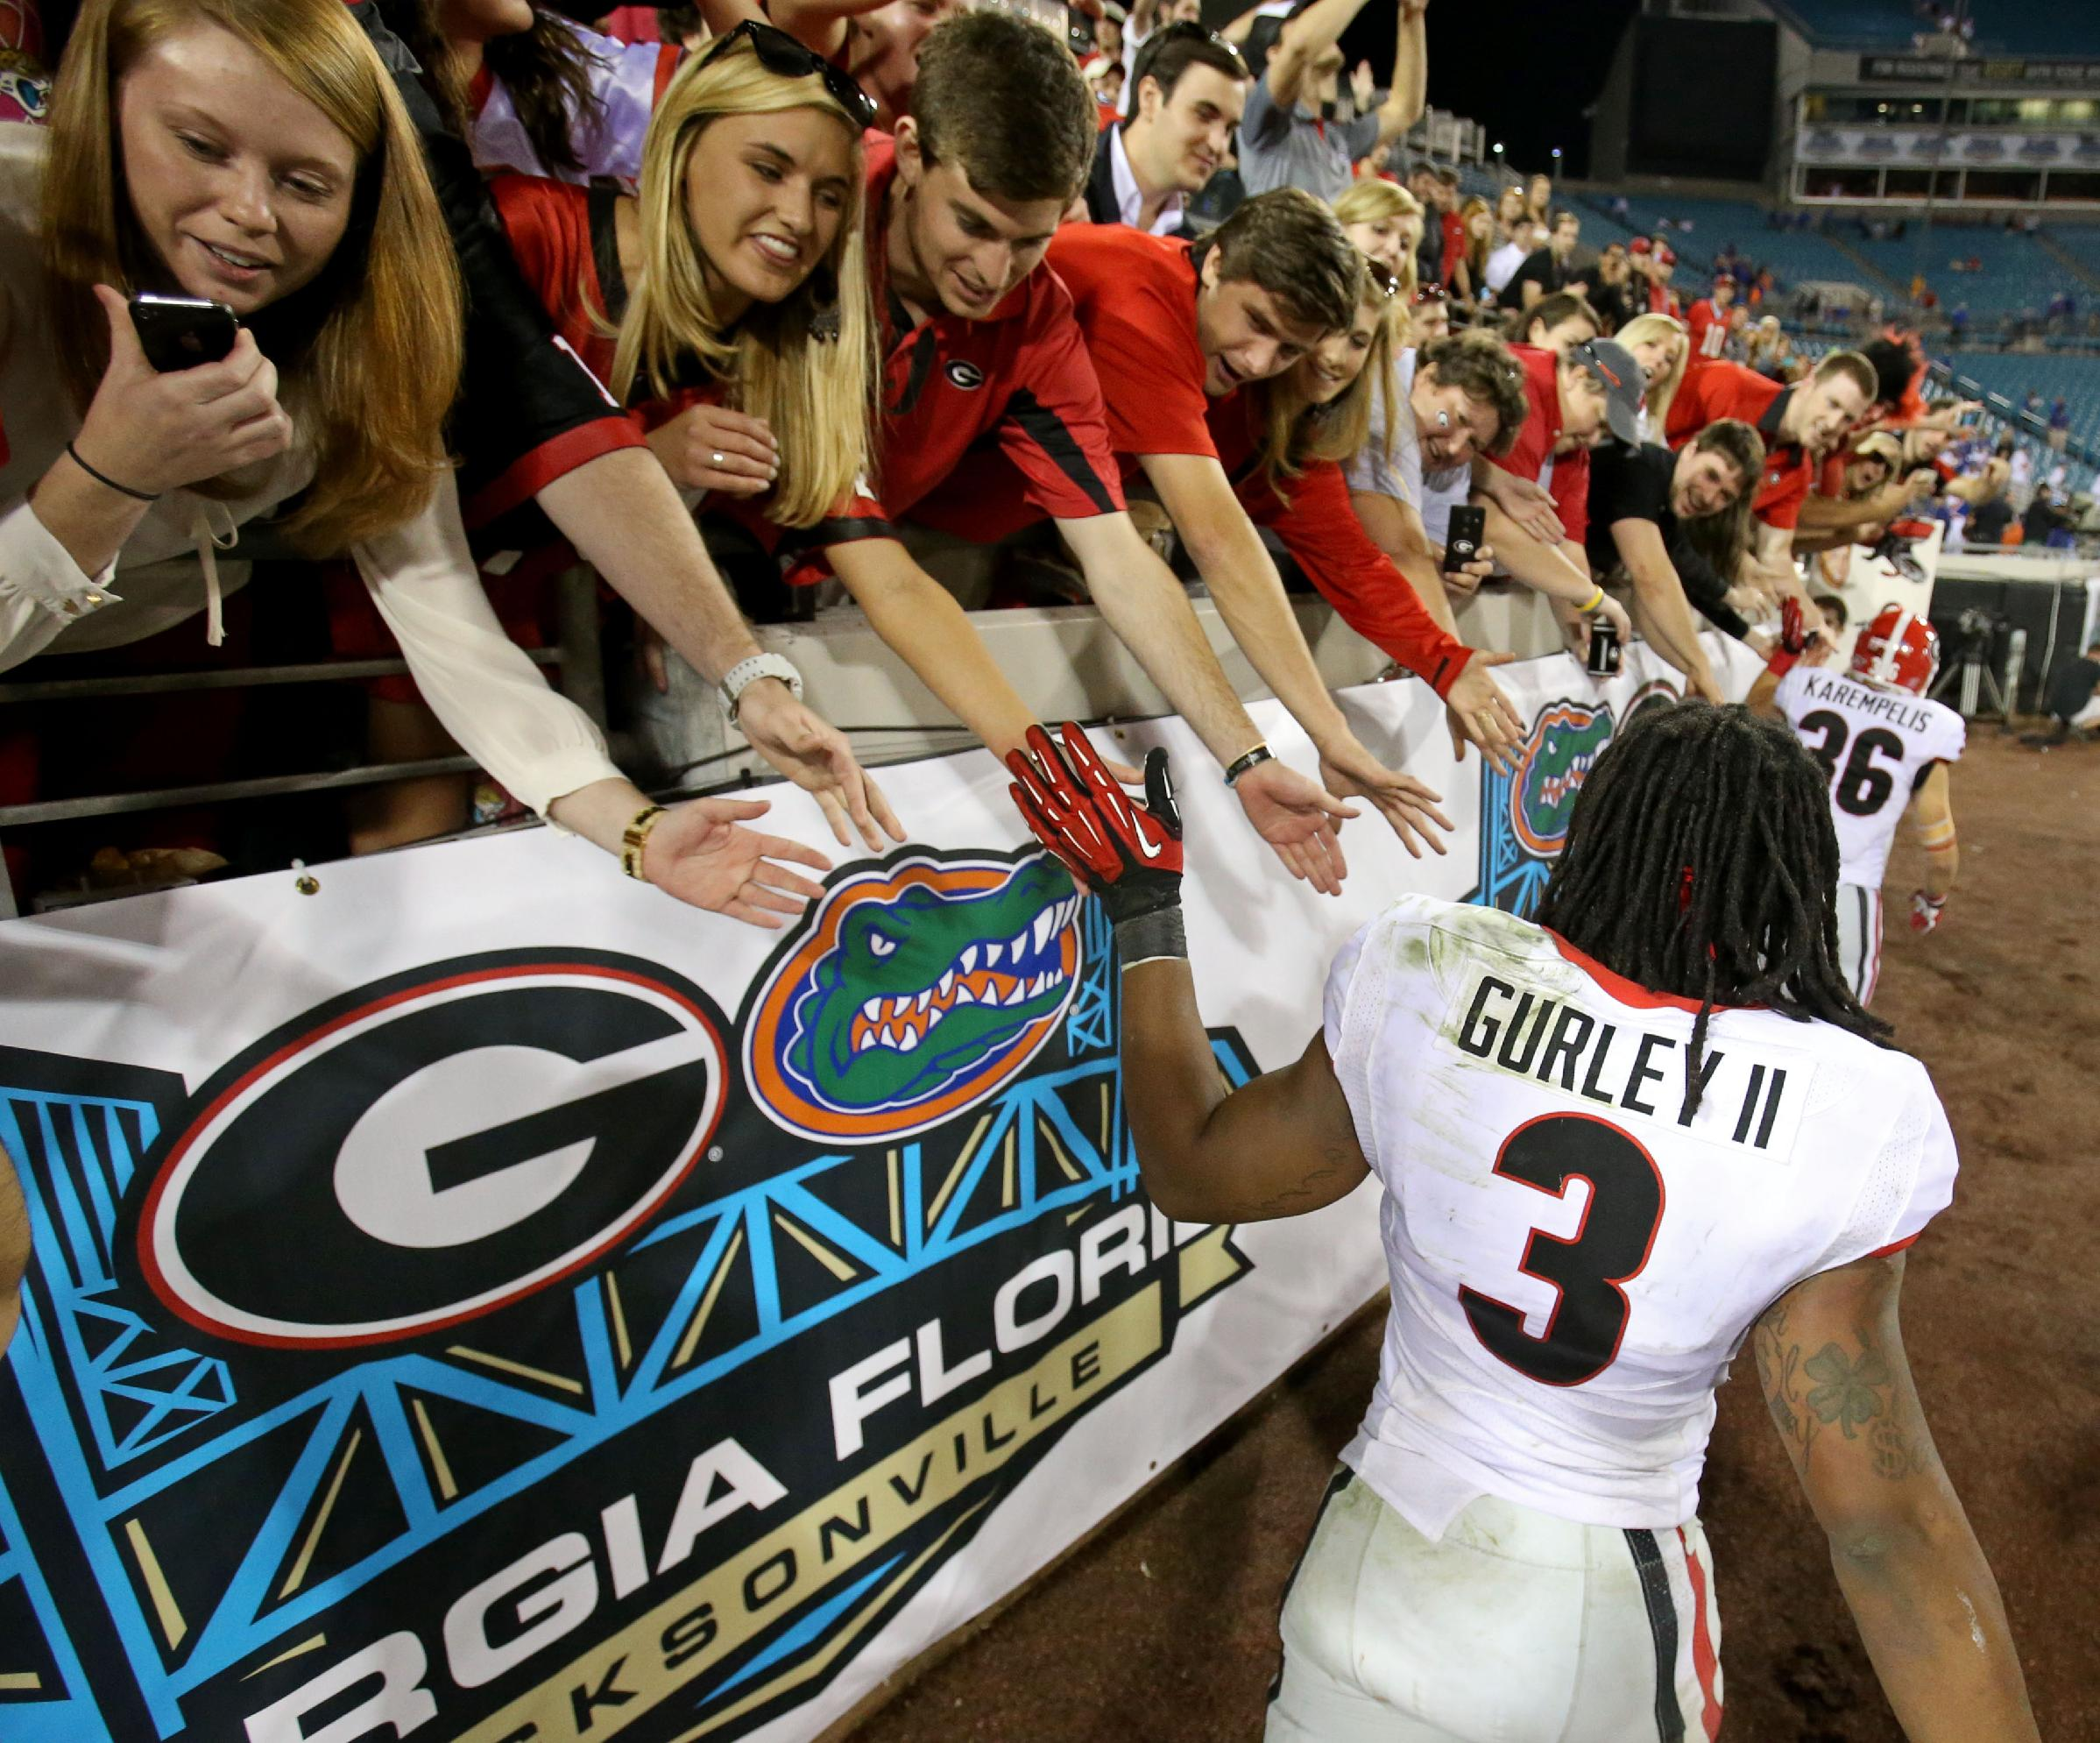 Georgia running back Todd Gurley (3) celebrates with fans following their 23-20 win over Florida after an NCAA football game, Saturday, Nov. 2, 2013 at Alltel Stadium in Jacksonville, Fla